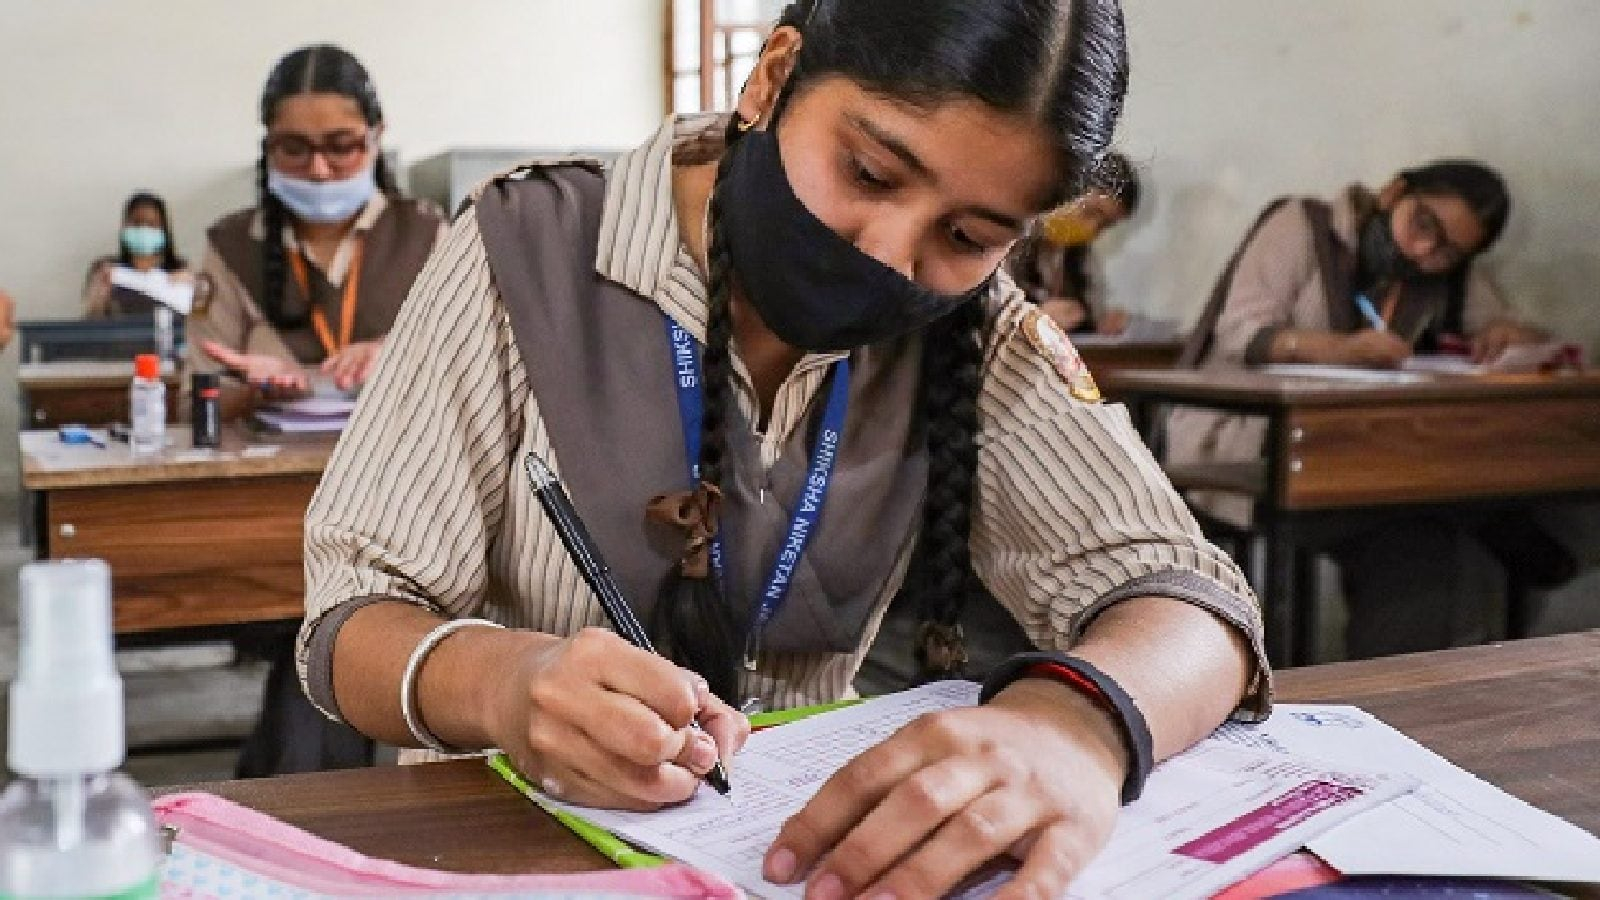 CISCE to Hold Board Exams Twice in 2022, Changes Syllabus, Exam Pattern